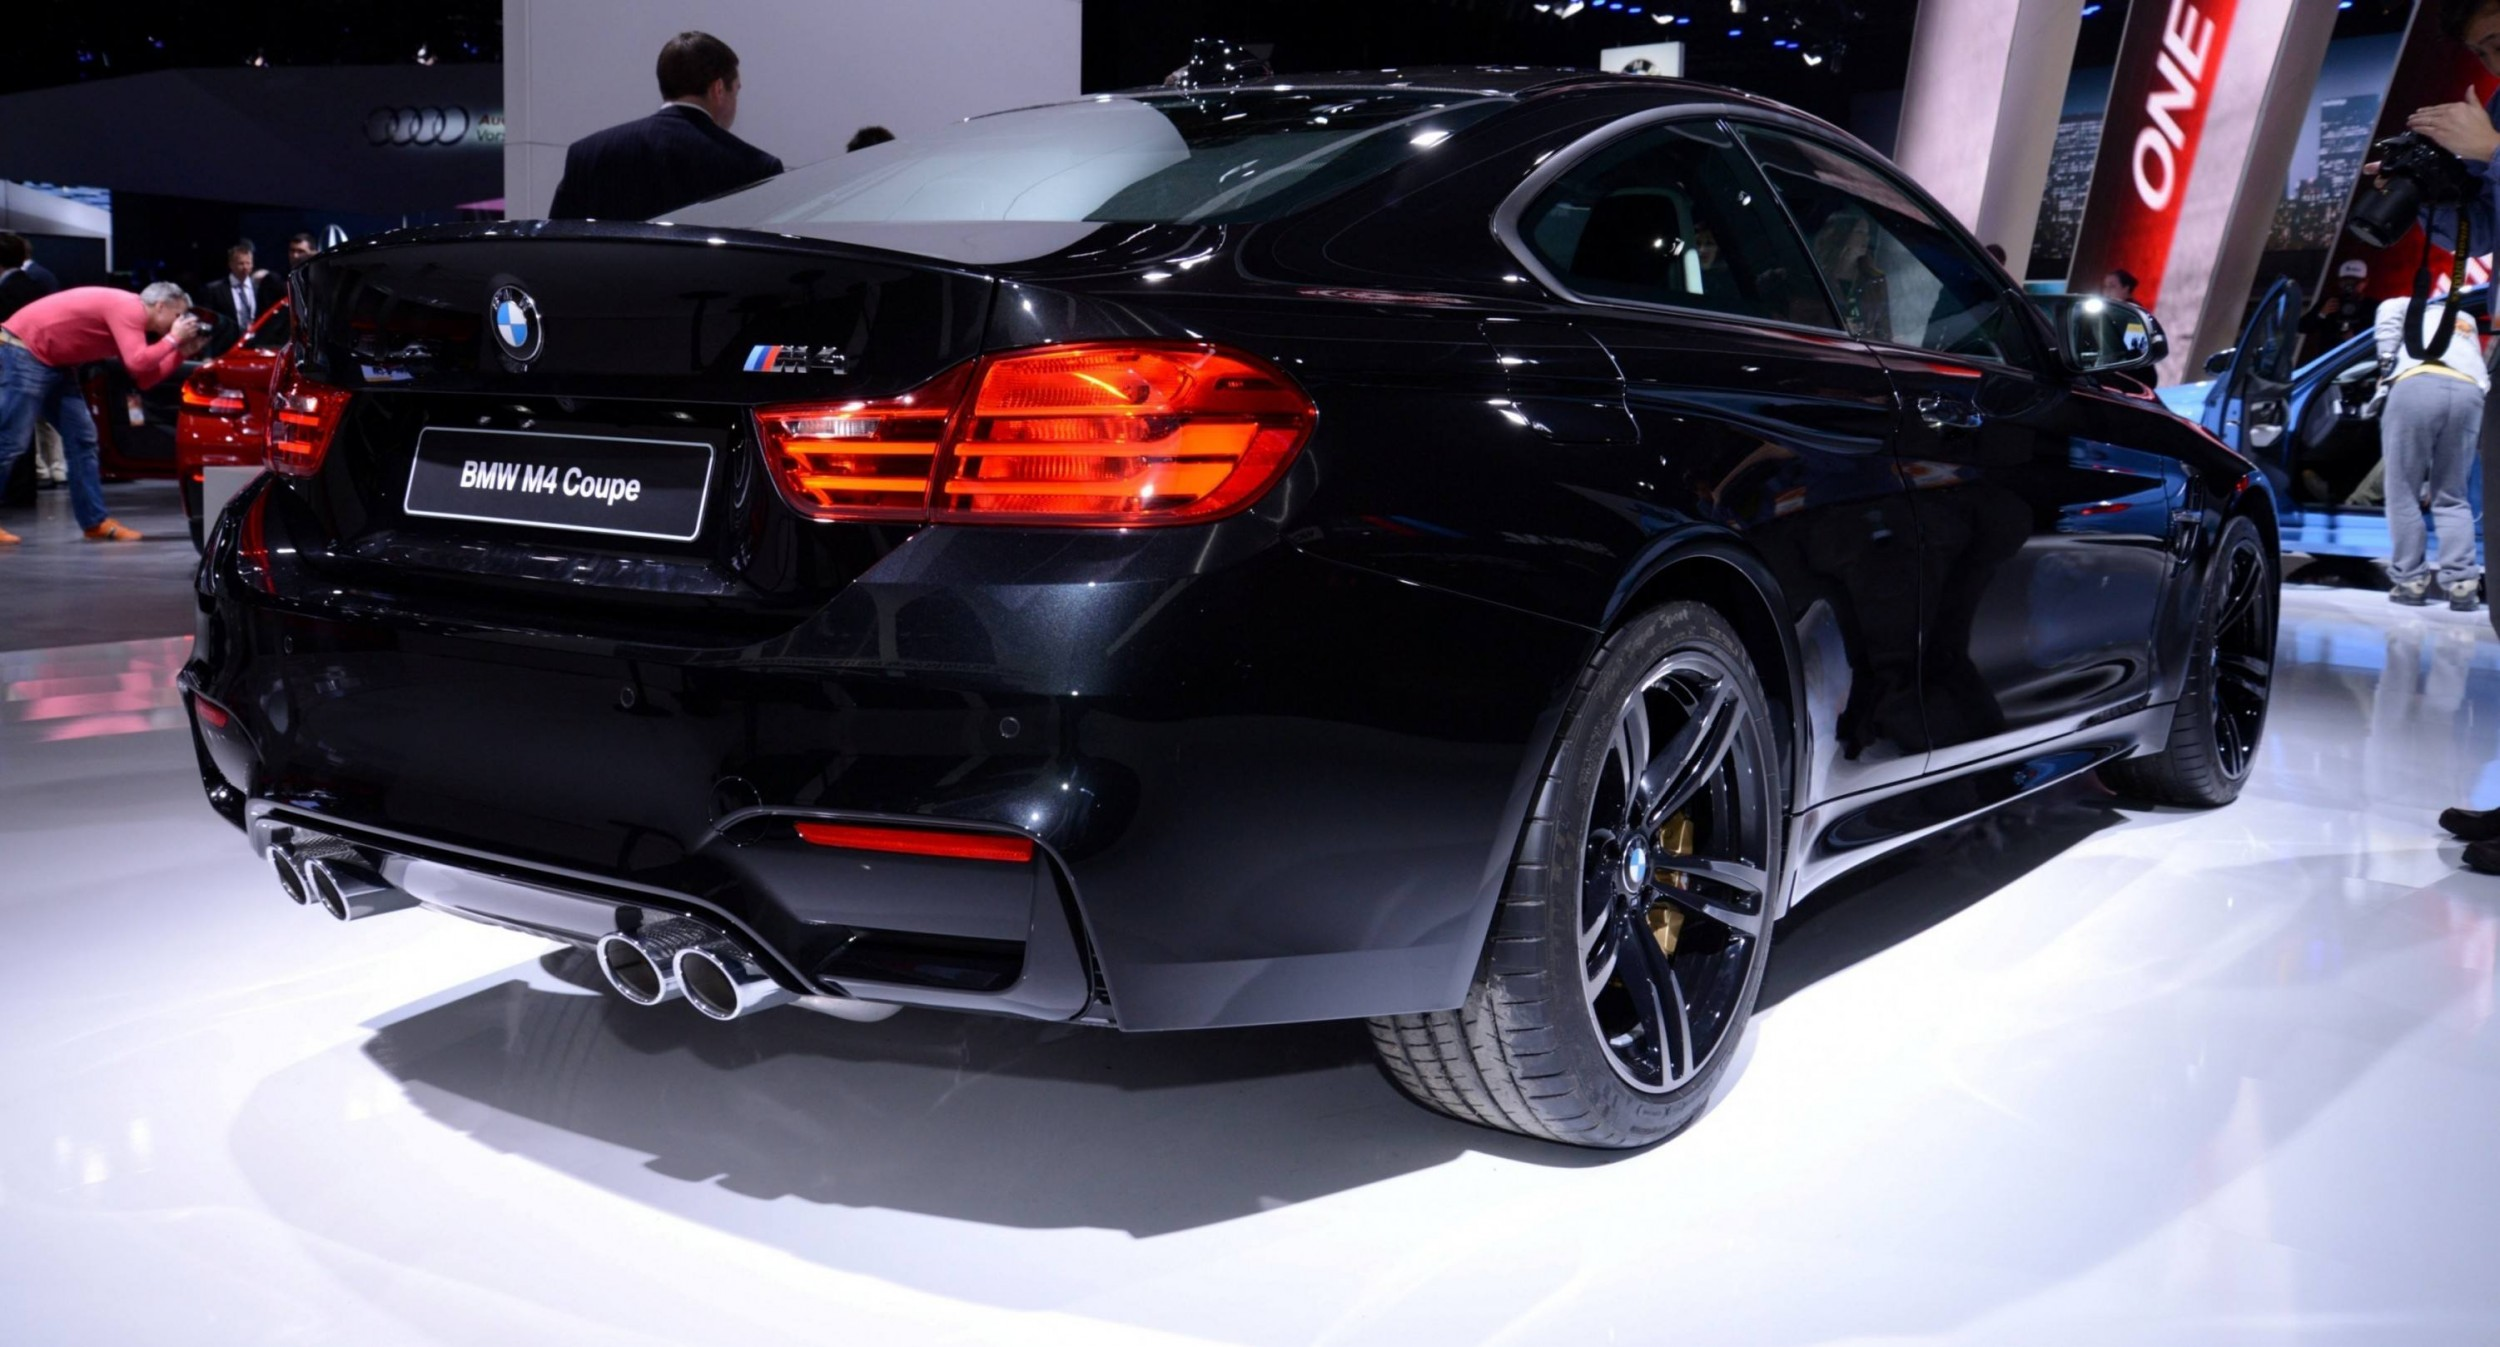 Update BMW M Coupe And M Sedan Technical Video Photos - Bmw 2014 m4